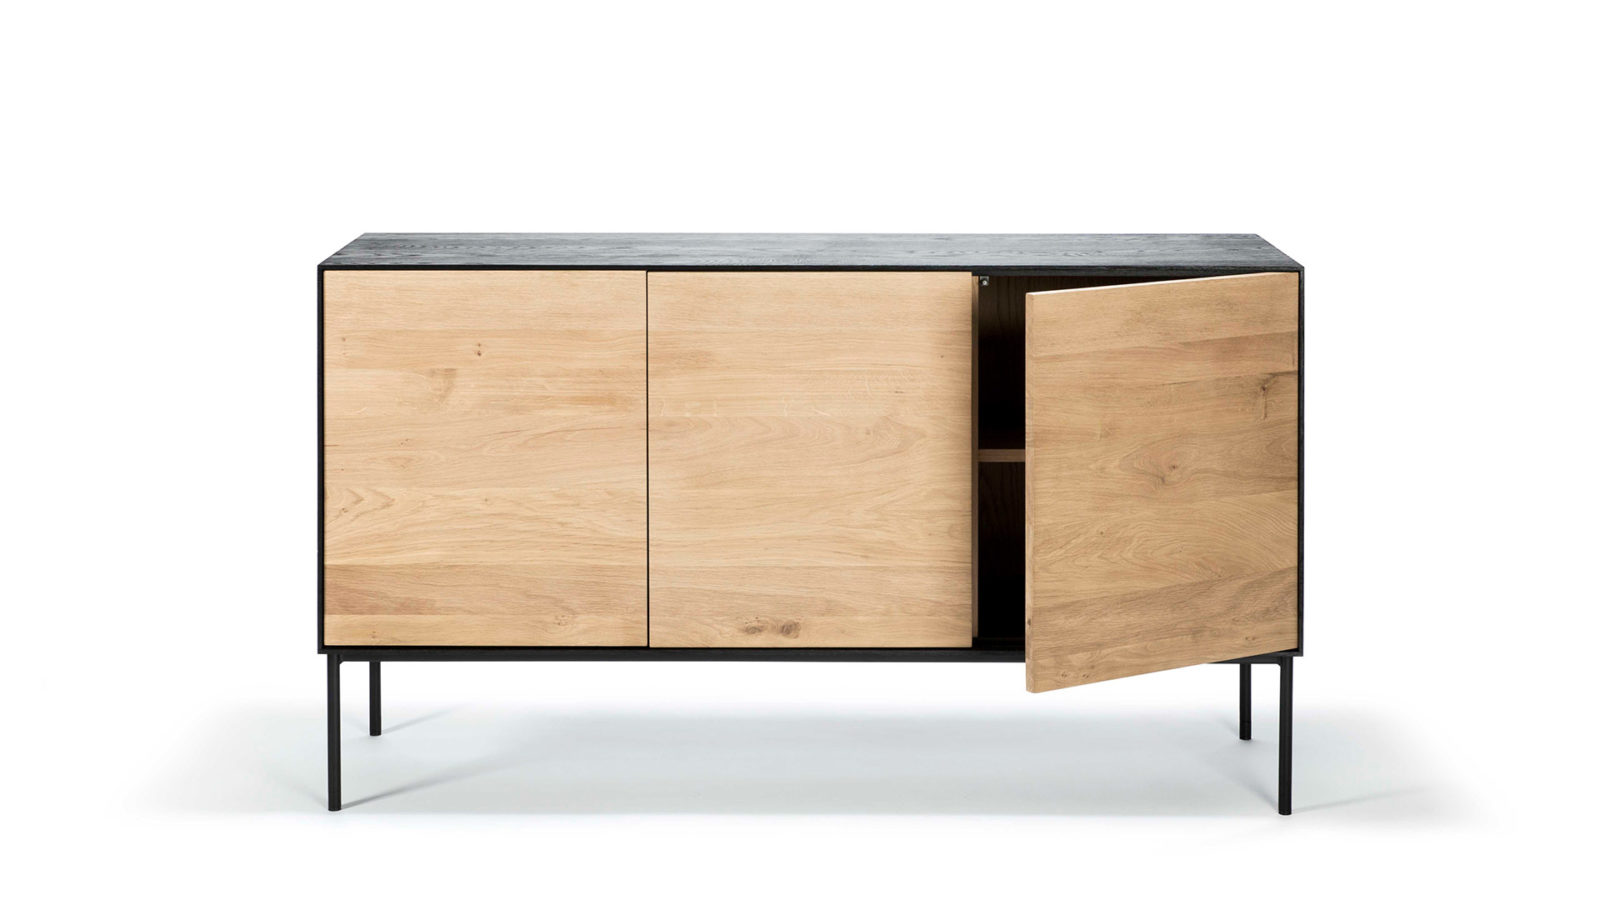 Blackbird cupboard in aok with three drawers